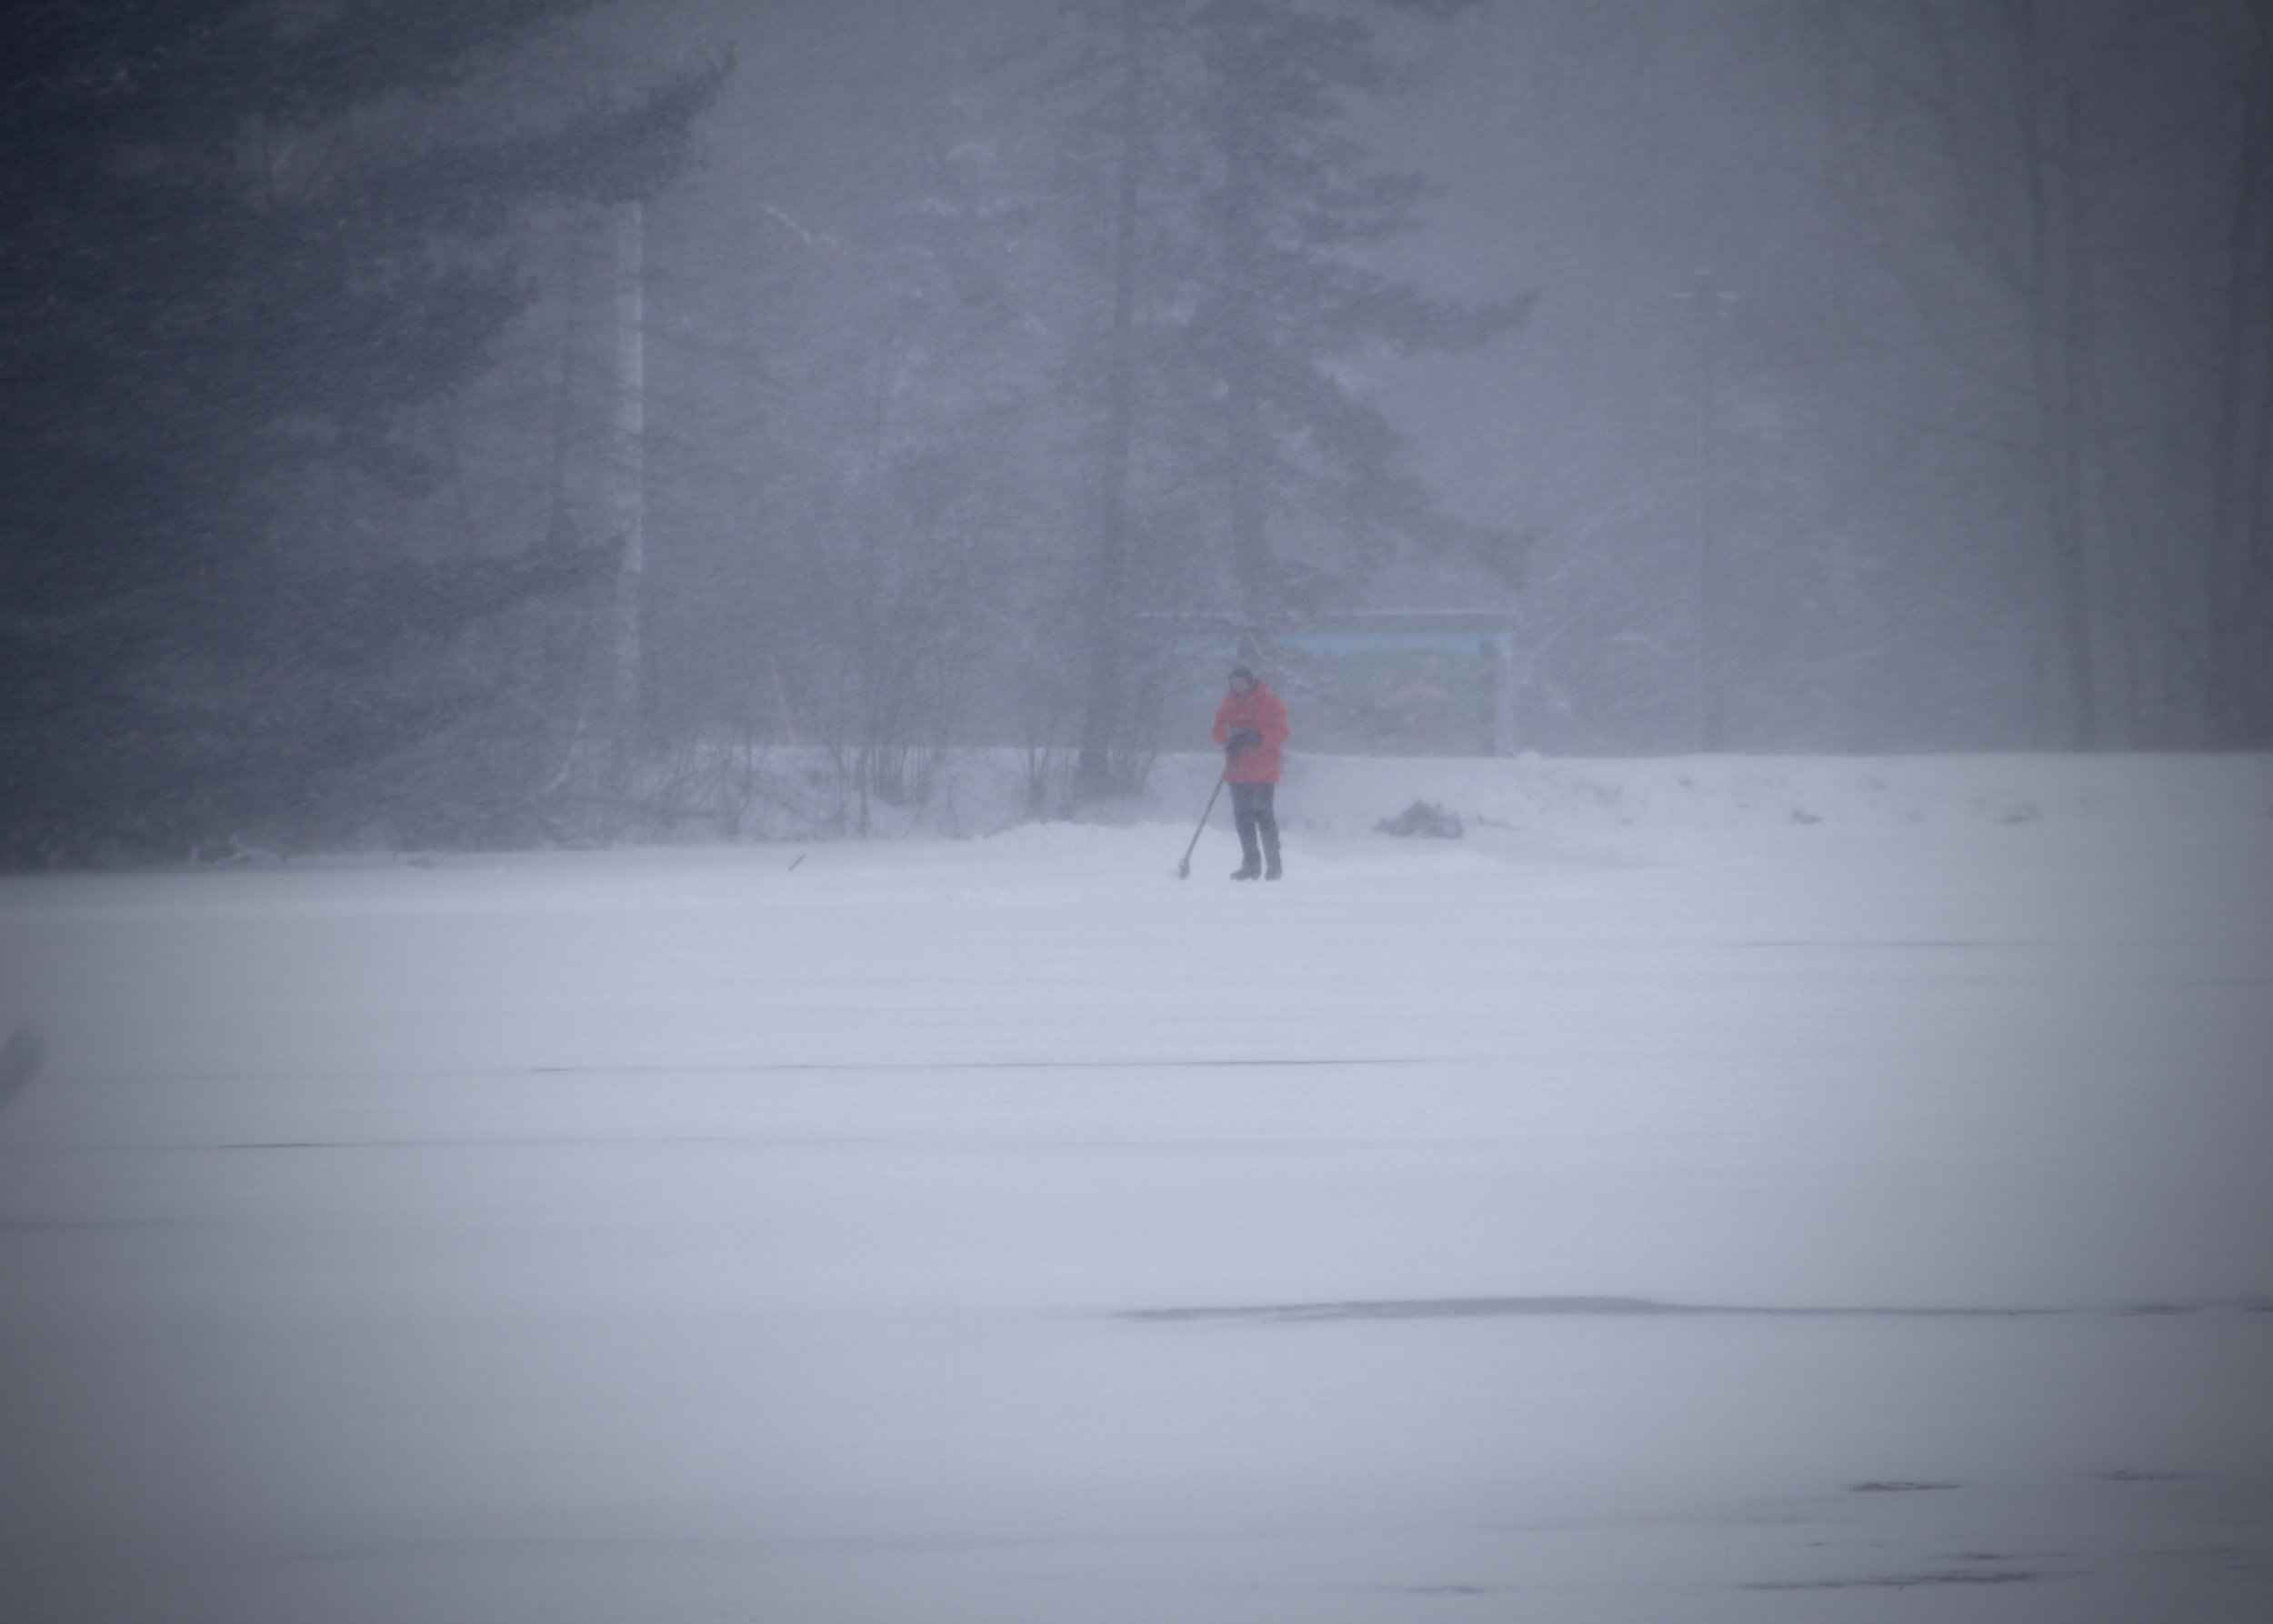 - A lone ice skater with a snow shovel was on the frozen reservoir - clearing snow from the ice for skating.